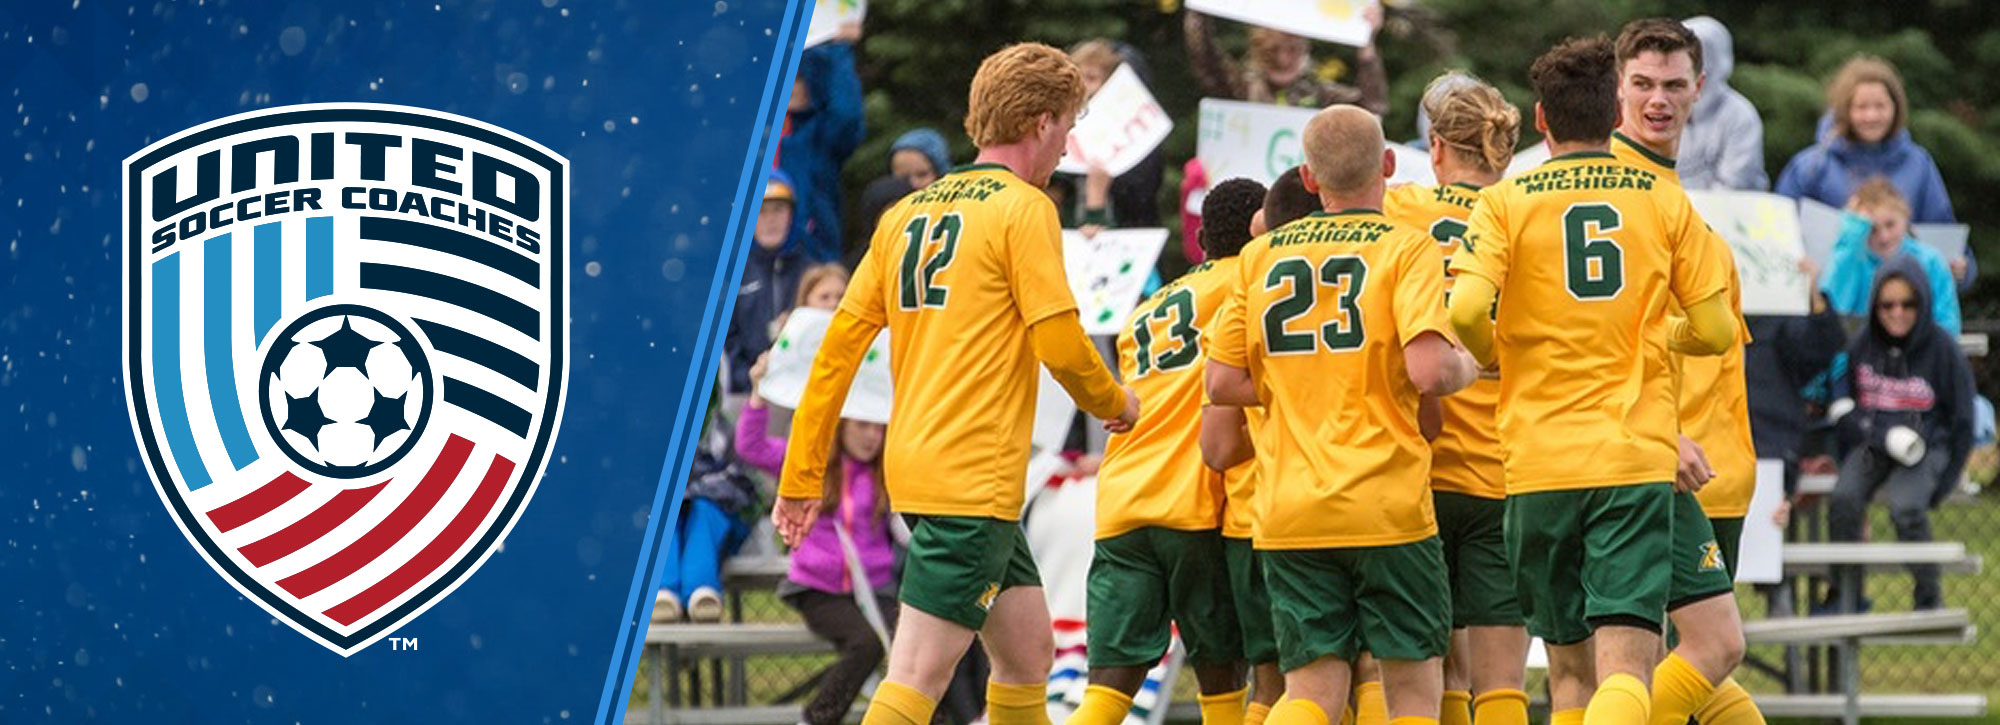 Northern Michigan Improves to No. 22 In United Soccer Coaches Rankings